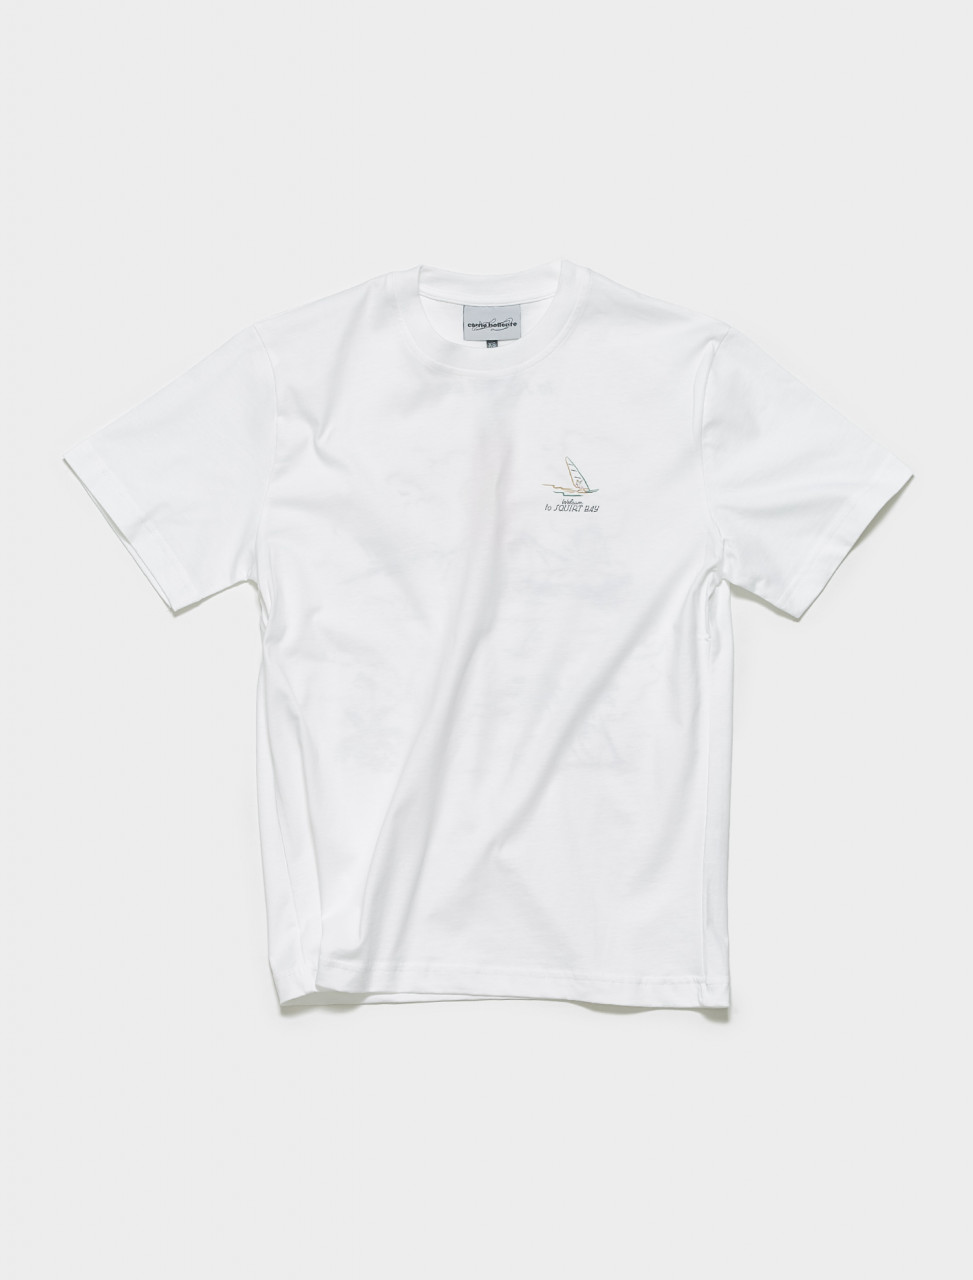 SS21TS10 CARNE BOLLENTE SQUIRT BAY T SHIRT IN WHITE